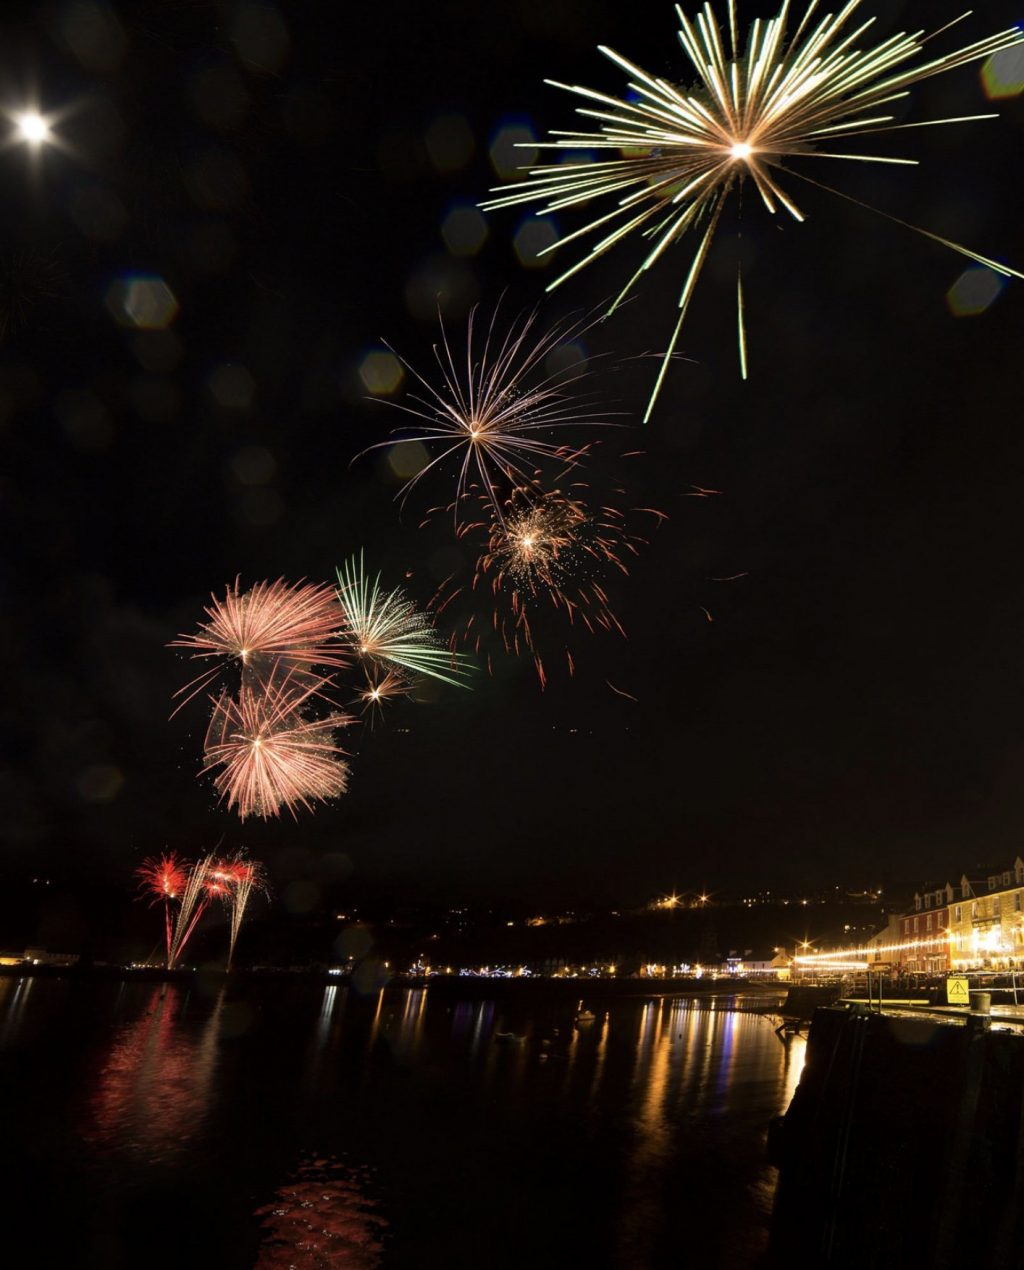 Fireworks and New Year Celebrations on the isle of Mull